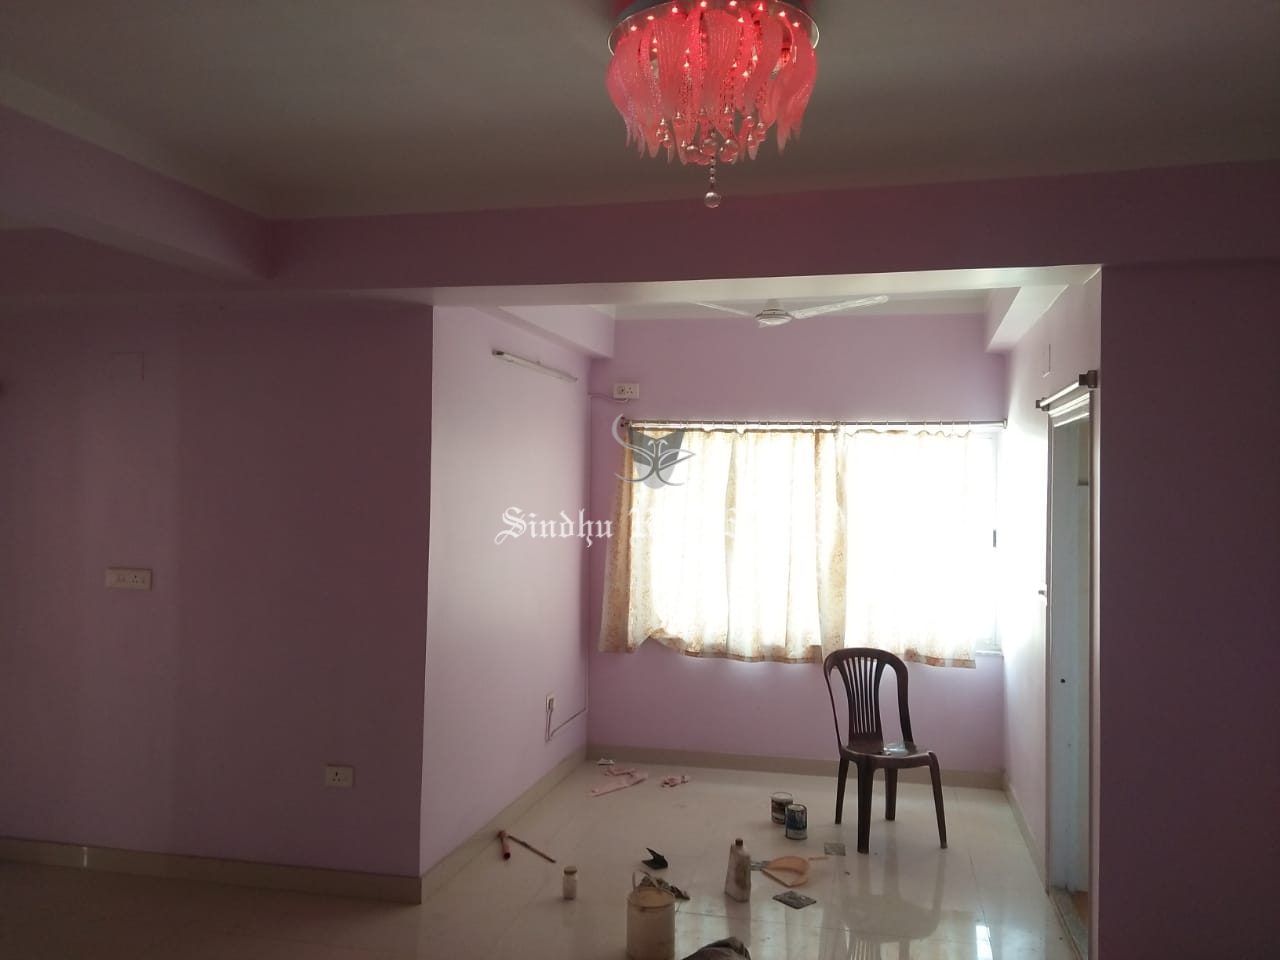 4  BHK residential flat for rent at Salt-lake.